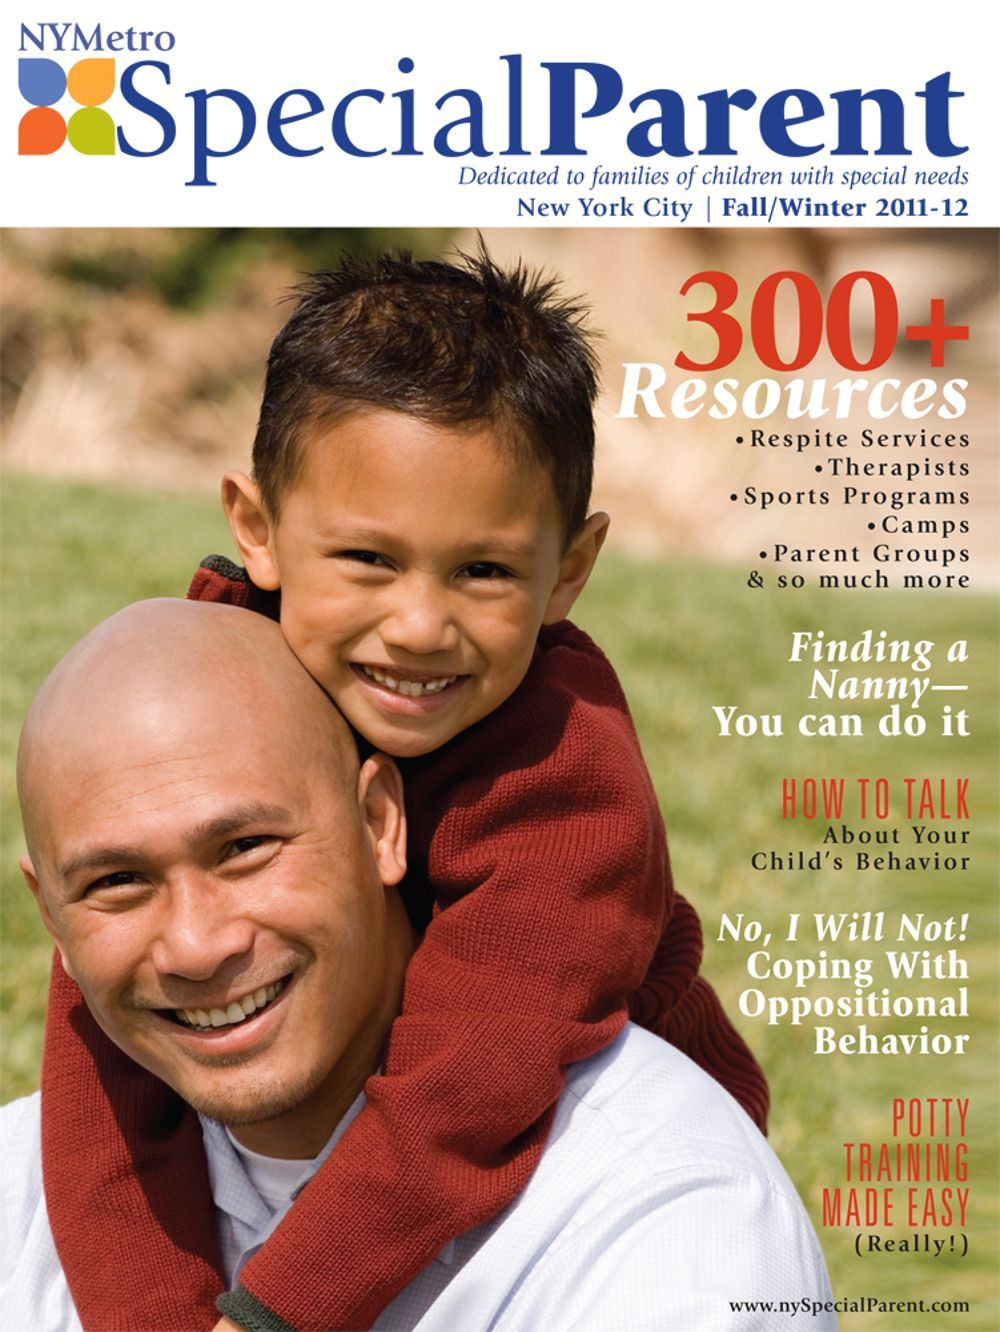 NYMetro Special Parent Fall/Winter 2011-12 issue